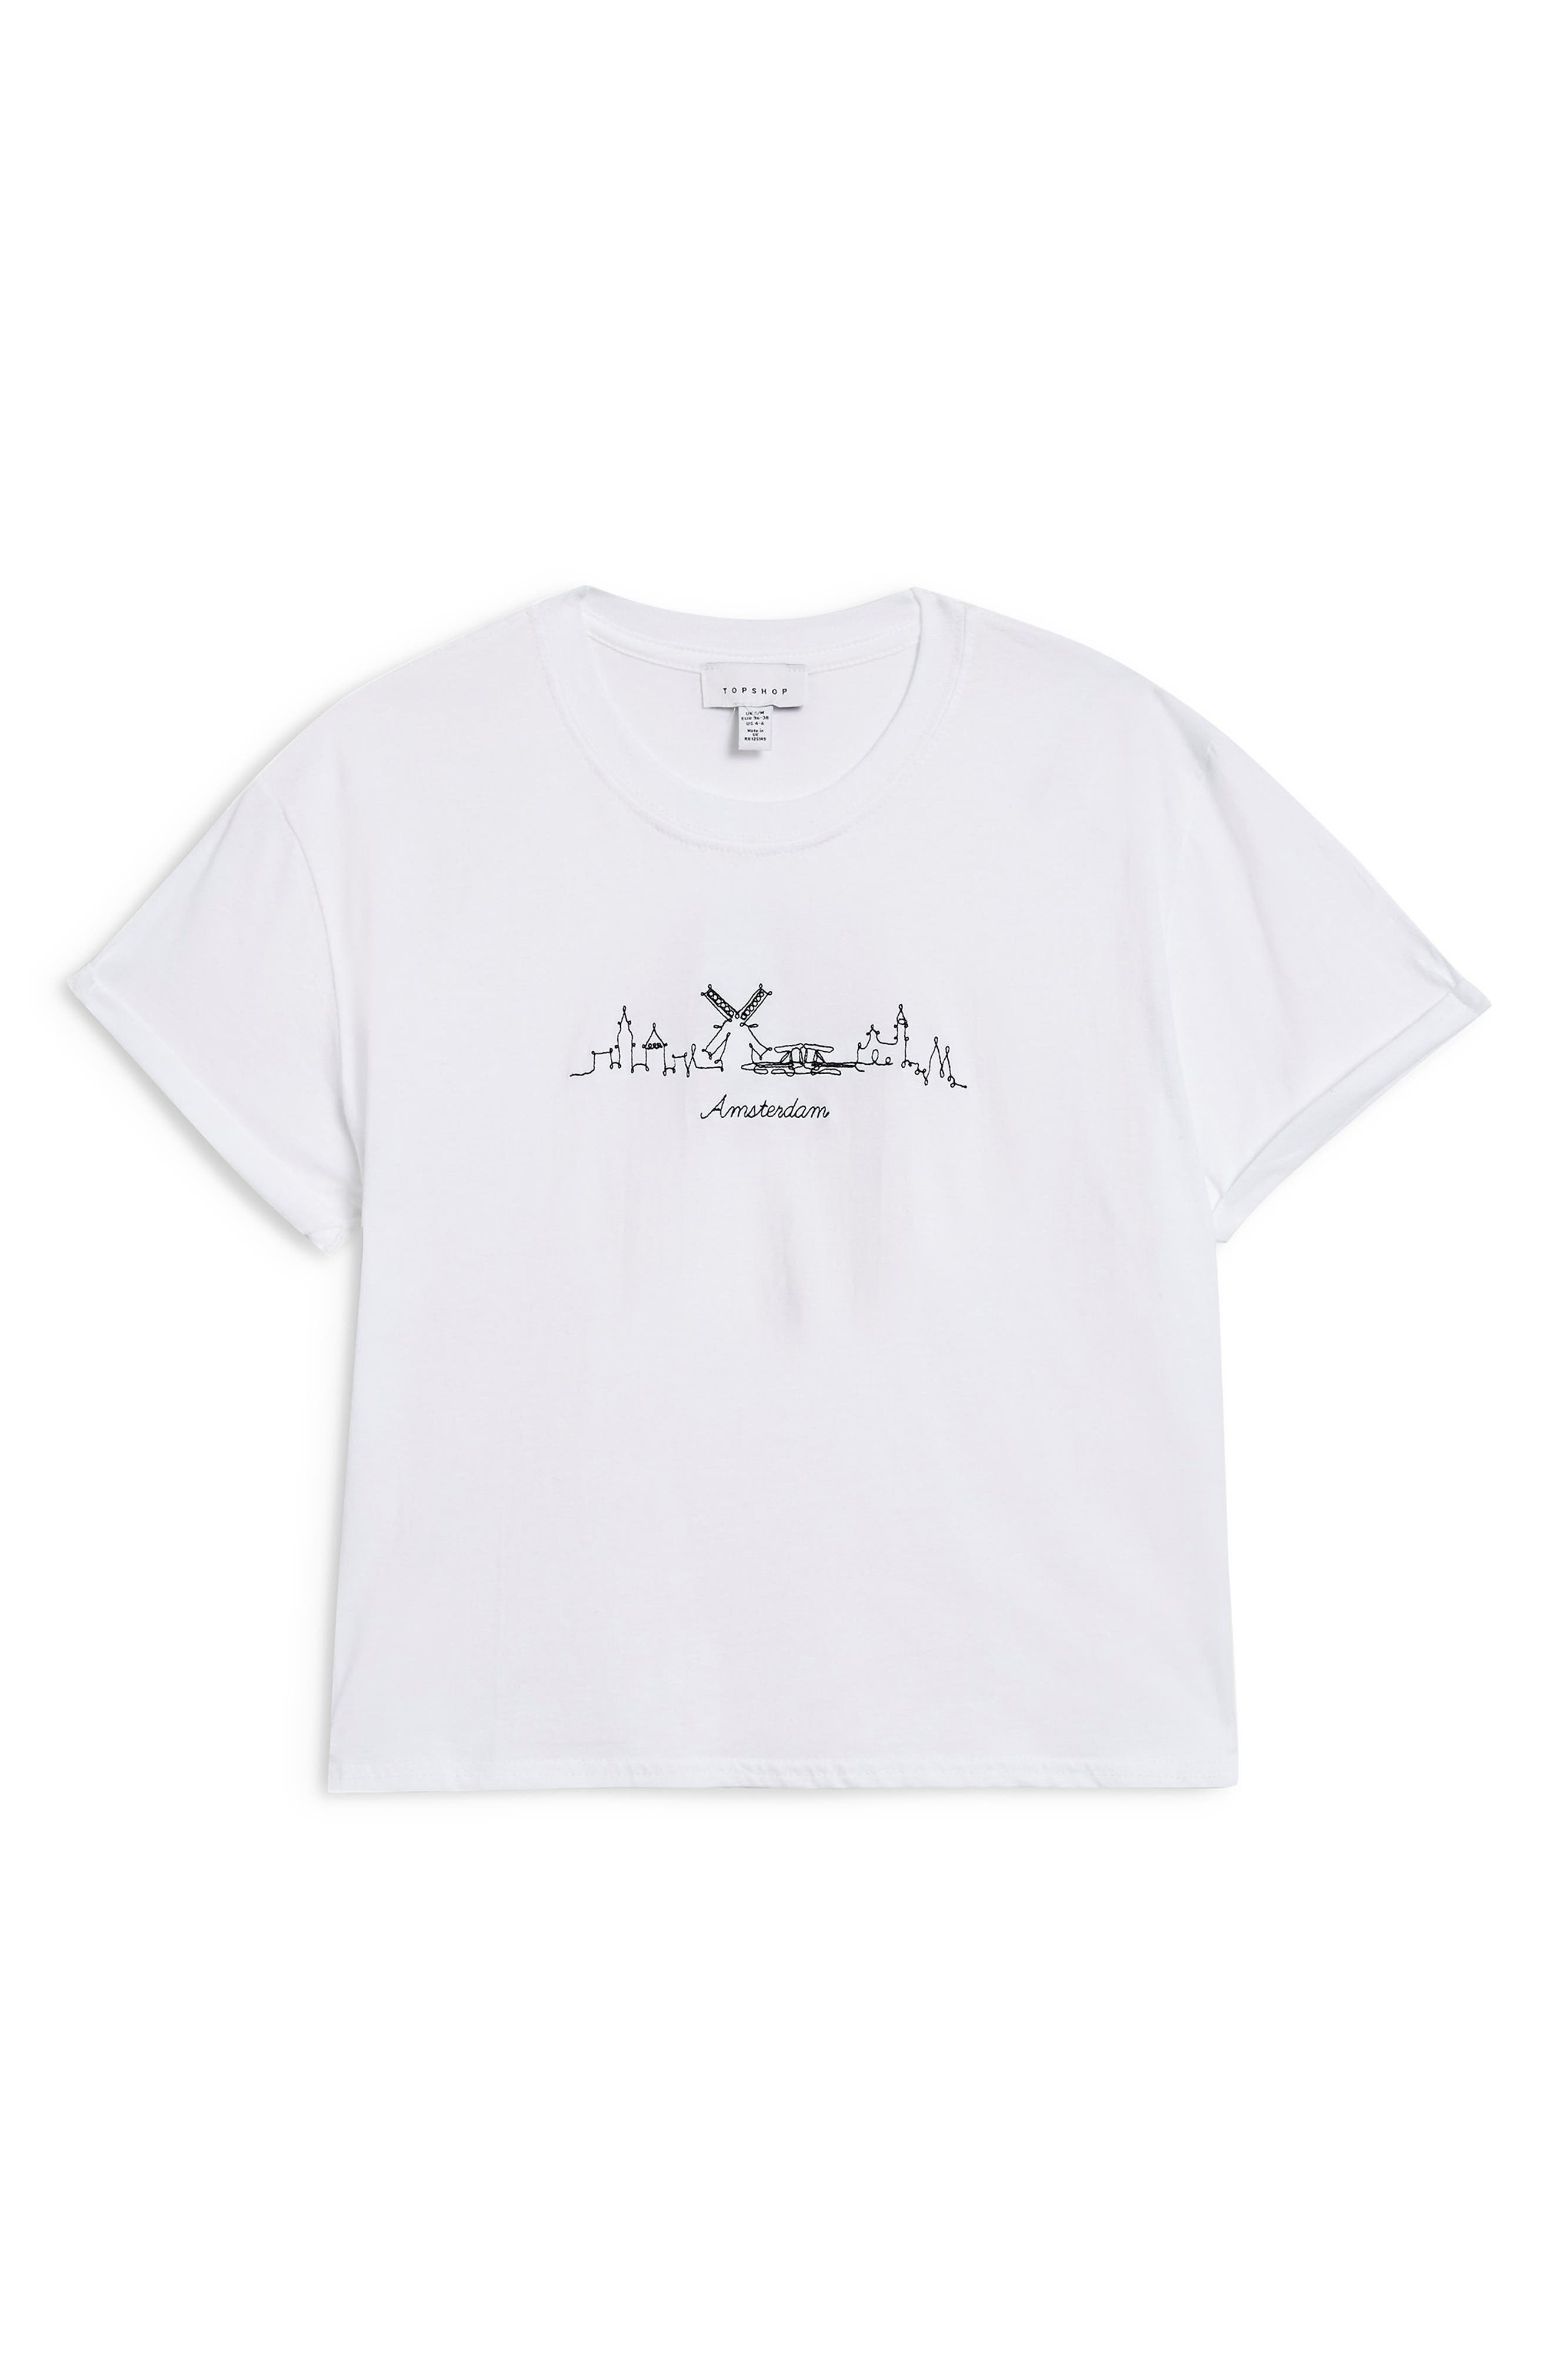 Skyline Graphic Tee,                             Alternate thumbnail 4, color,                             WHITE